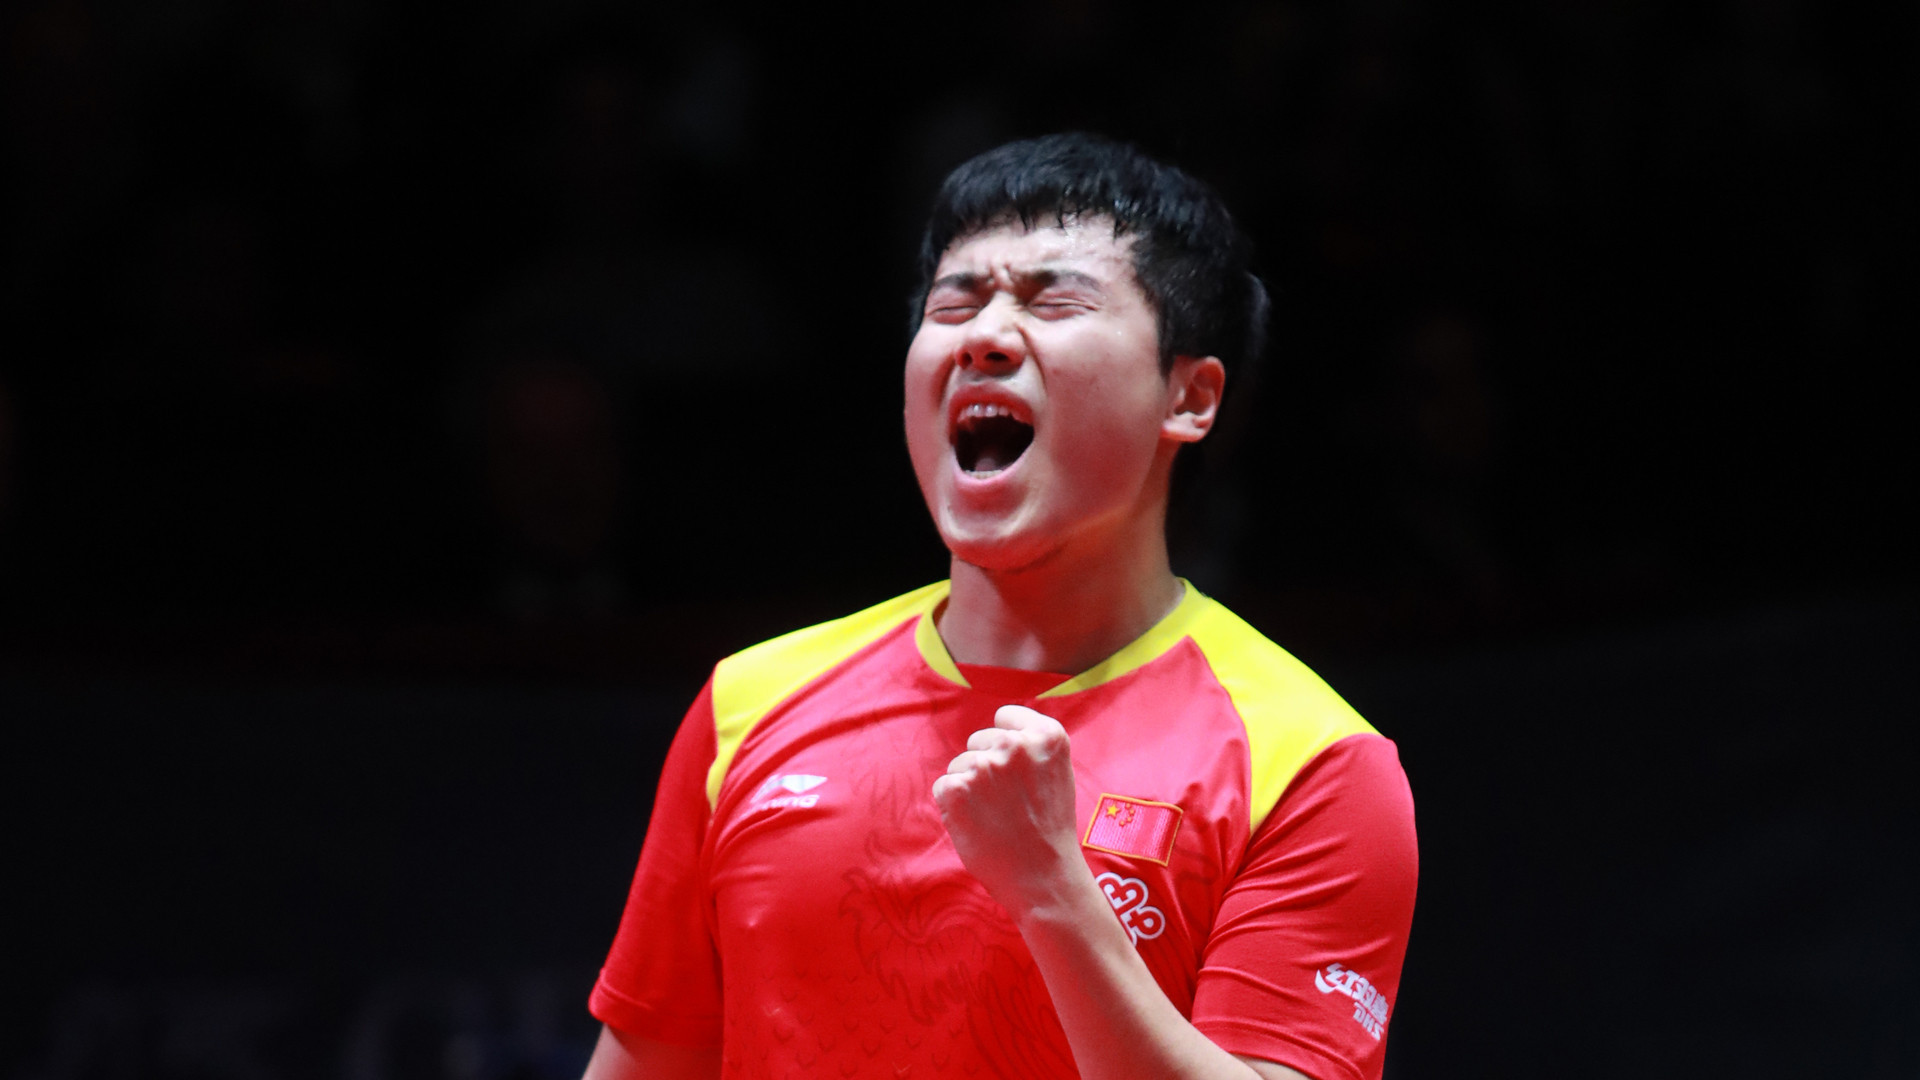 Chinese qualifier Liang beats second seed Xu to claim first ITTF World Tour title at Austrian Open